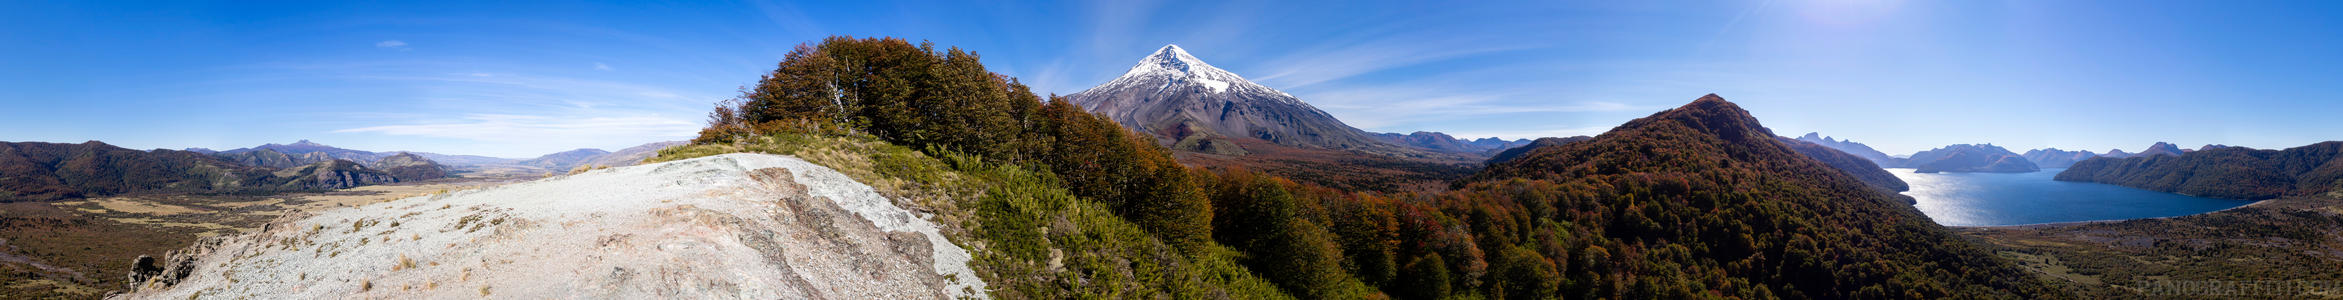 Volcano Lanin in 360 from Lago Tromen Lookout - An immersive view of the autumn forest surrounding a lookout point for volcano Lanin